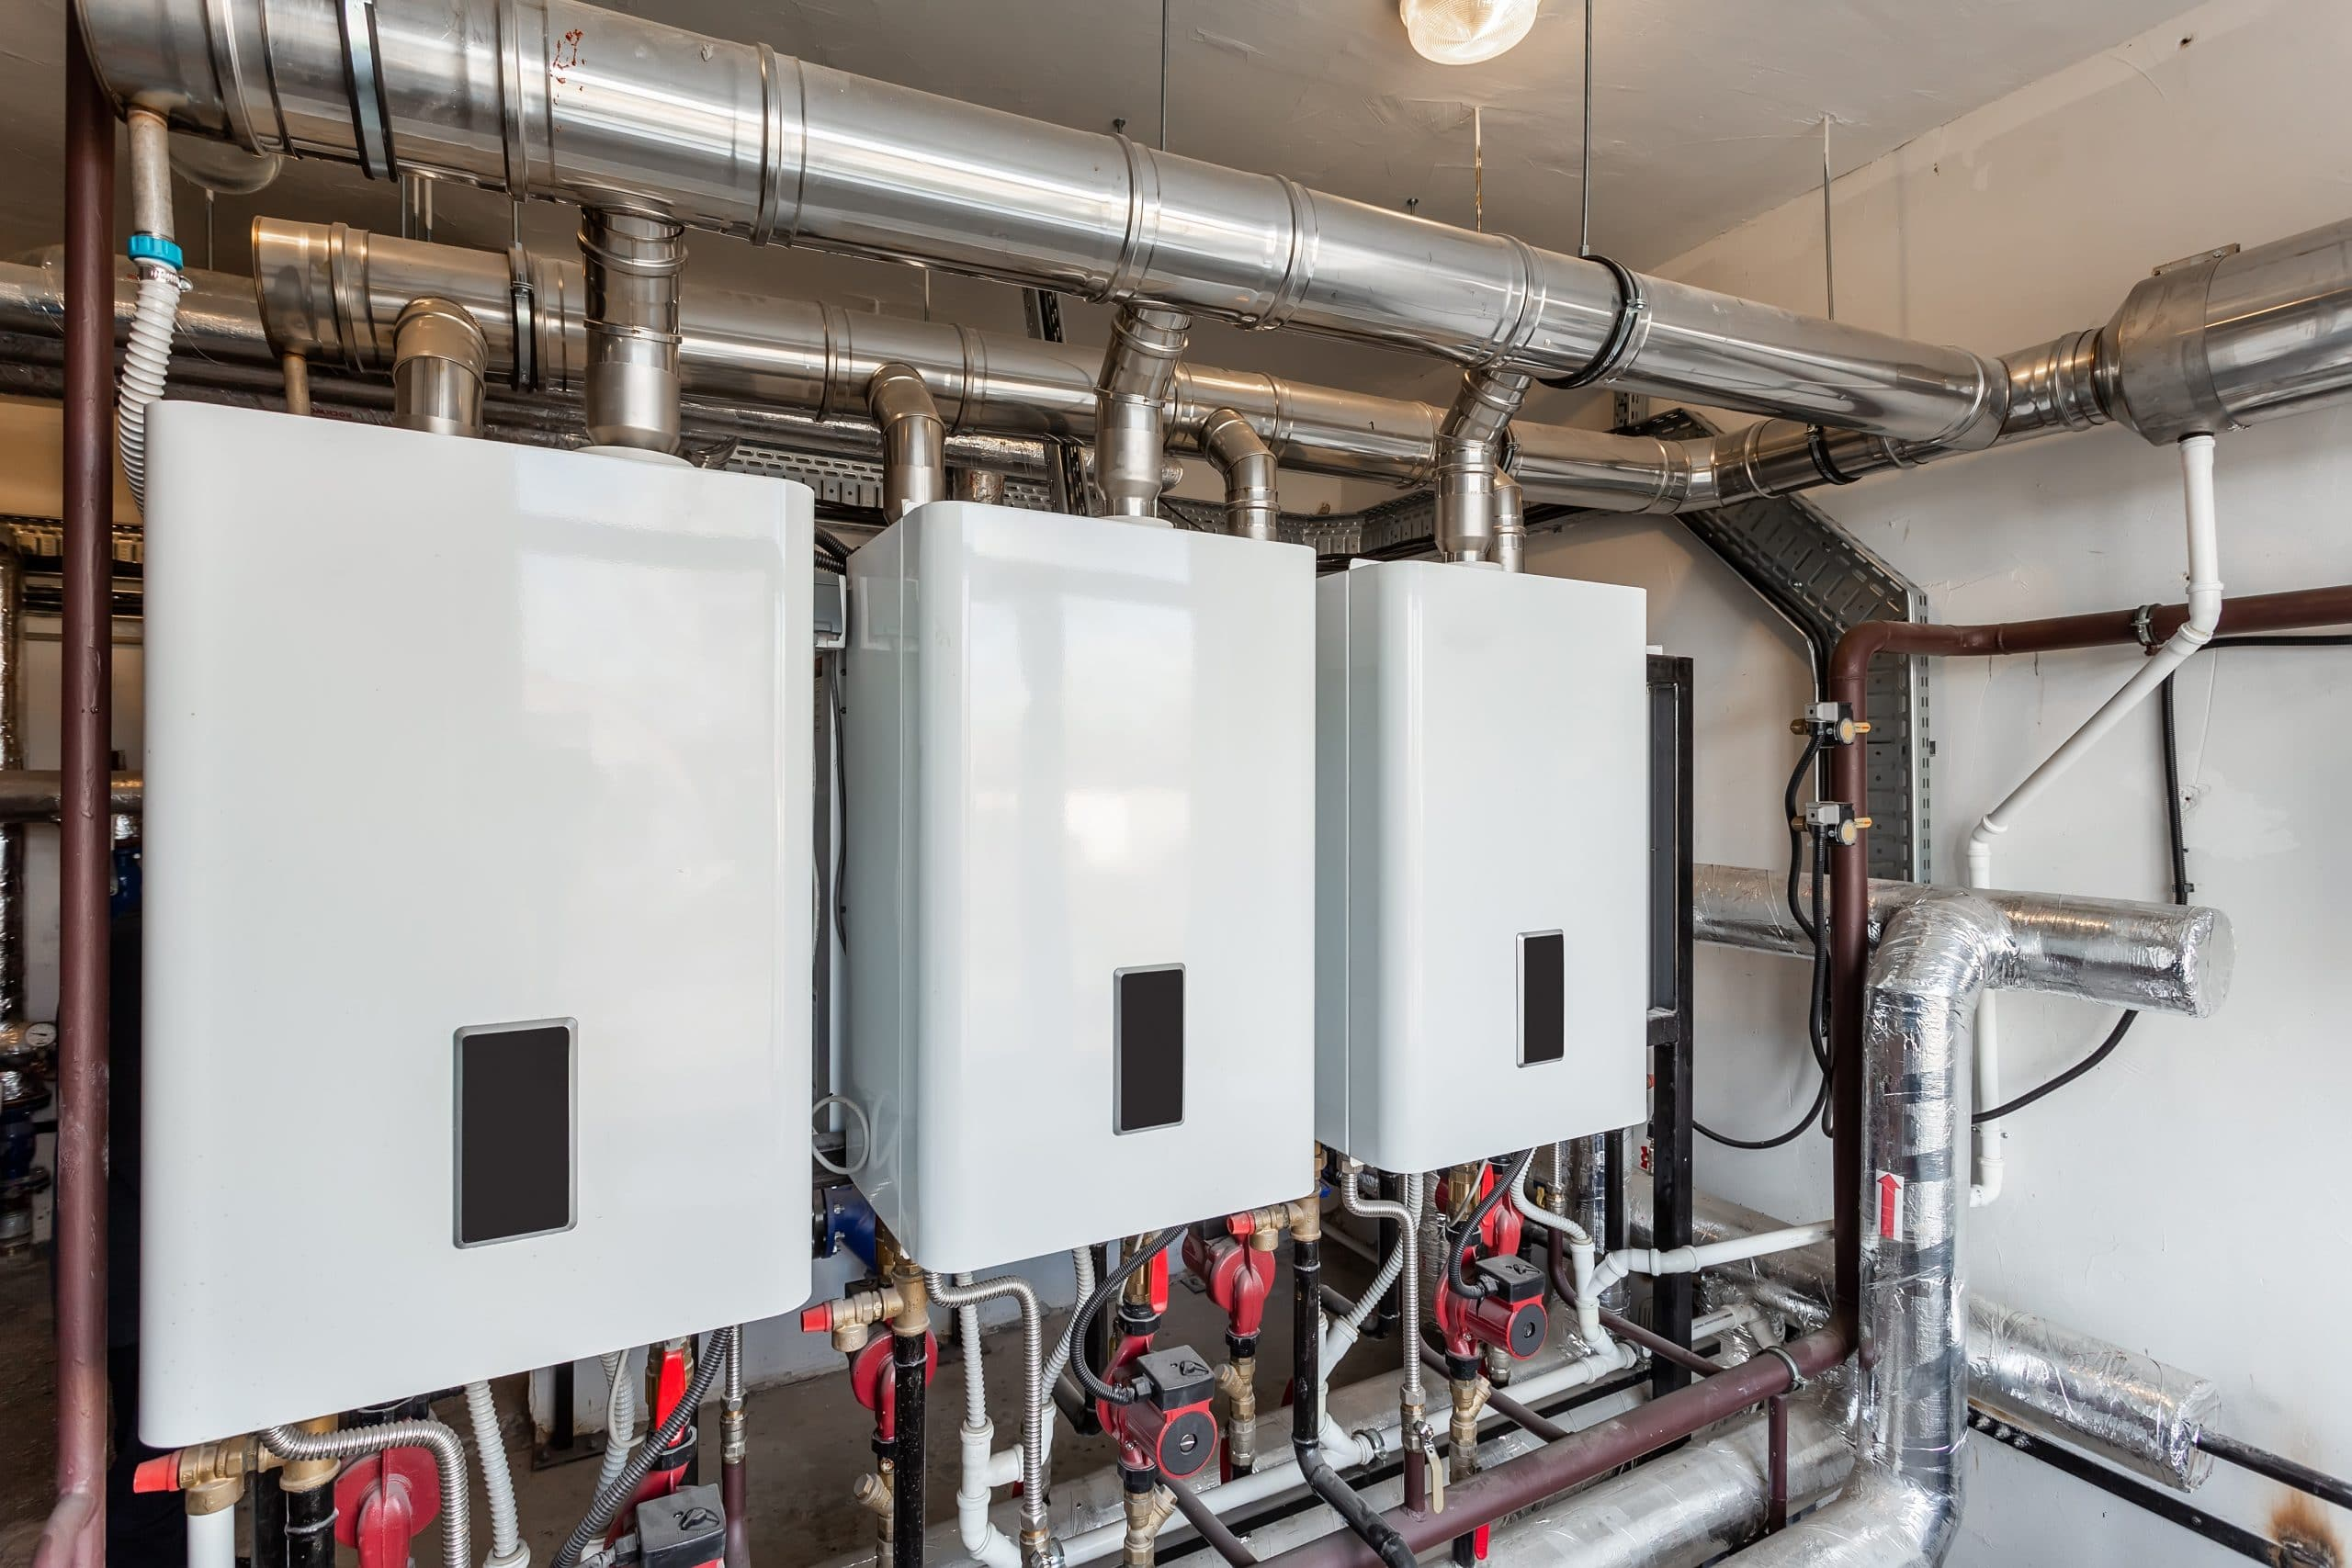 Row of three white wall hung commercial boilers